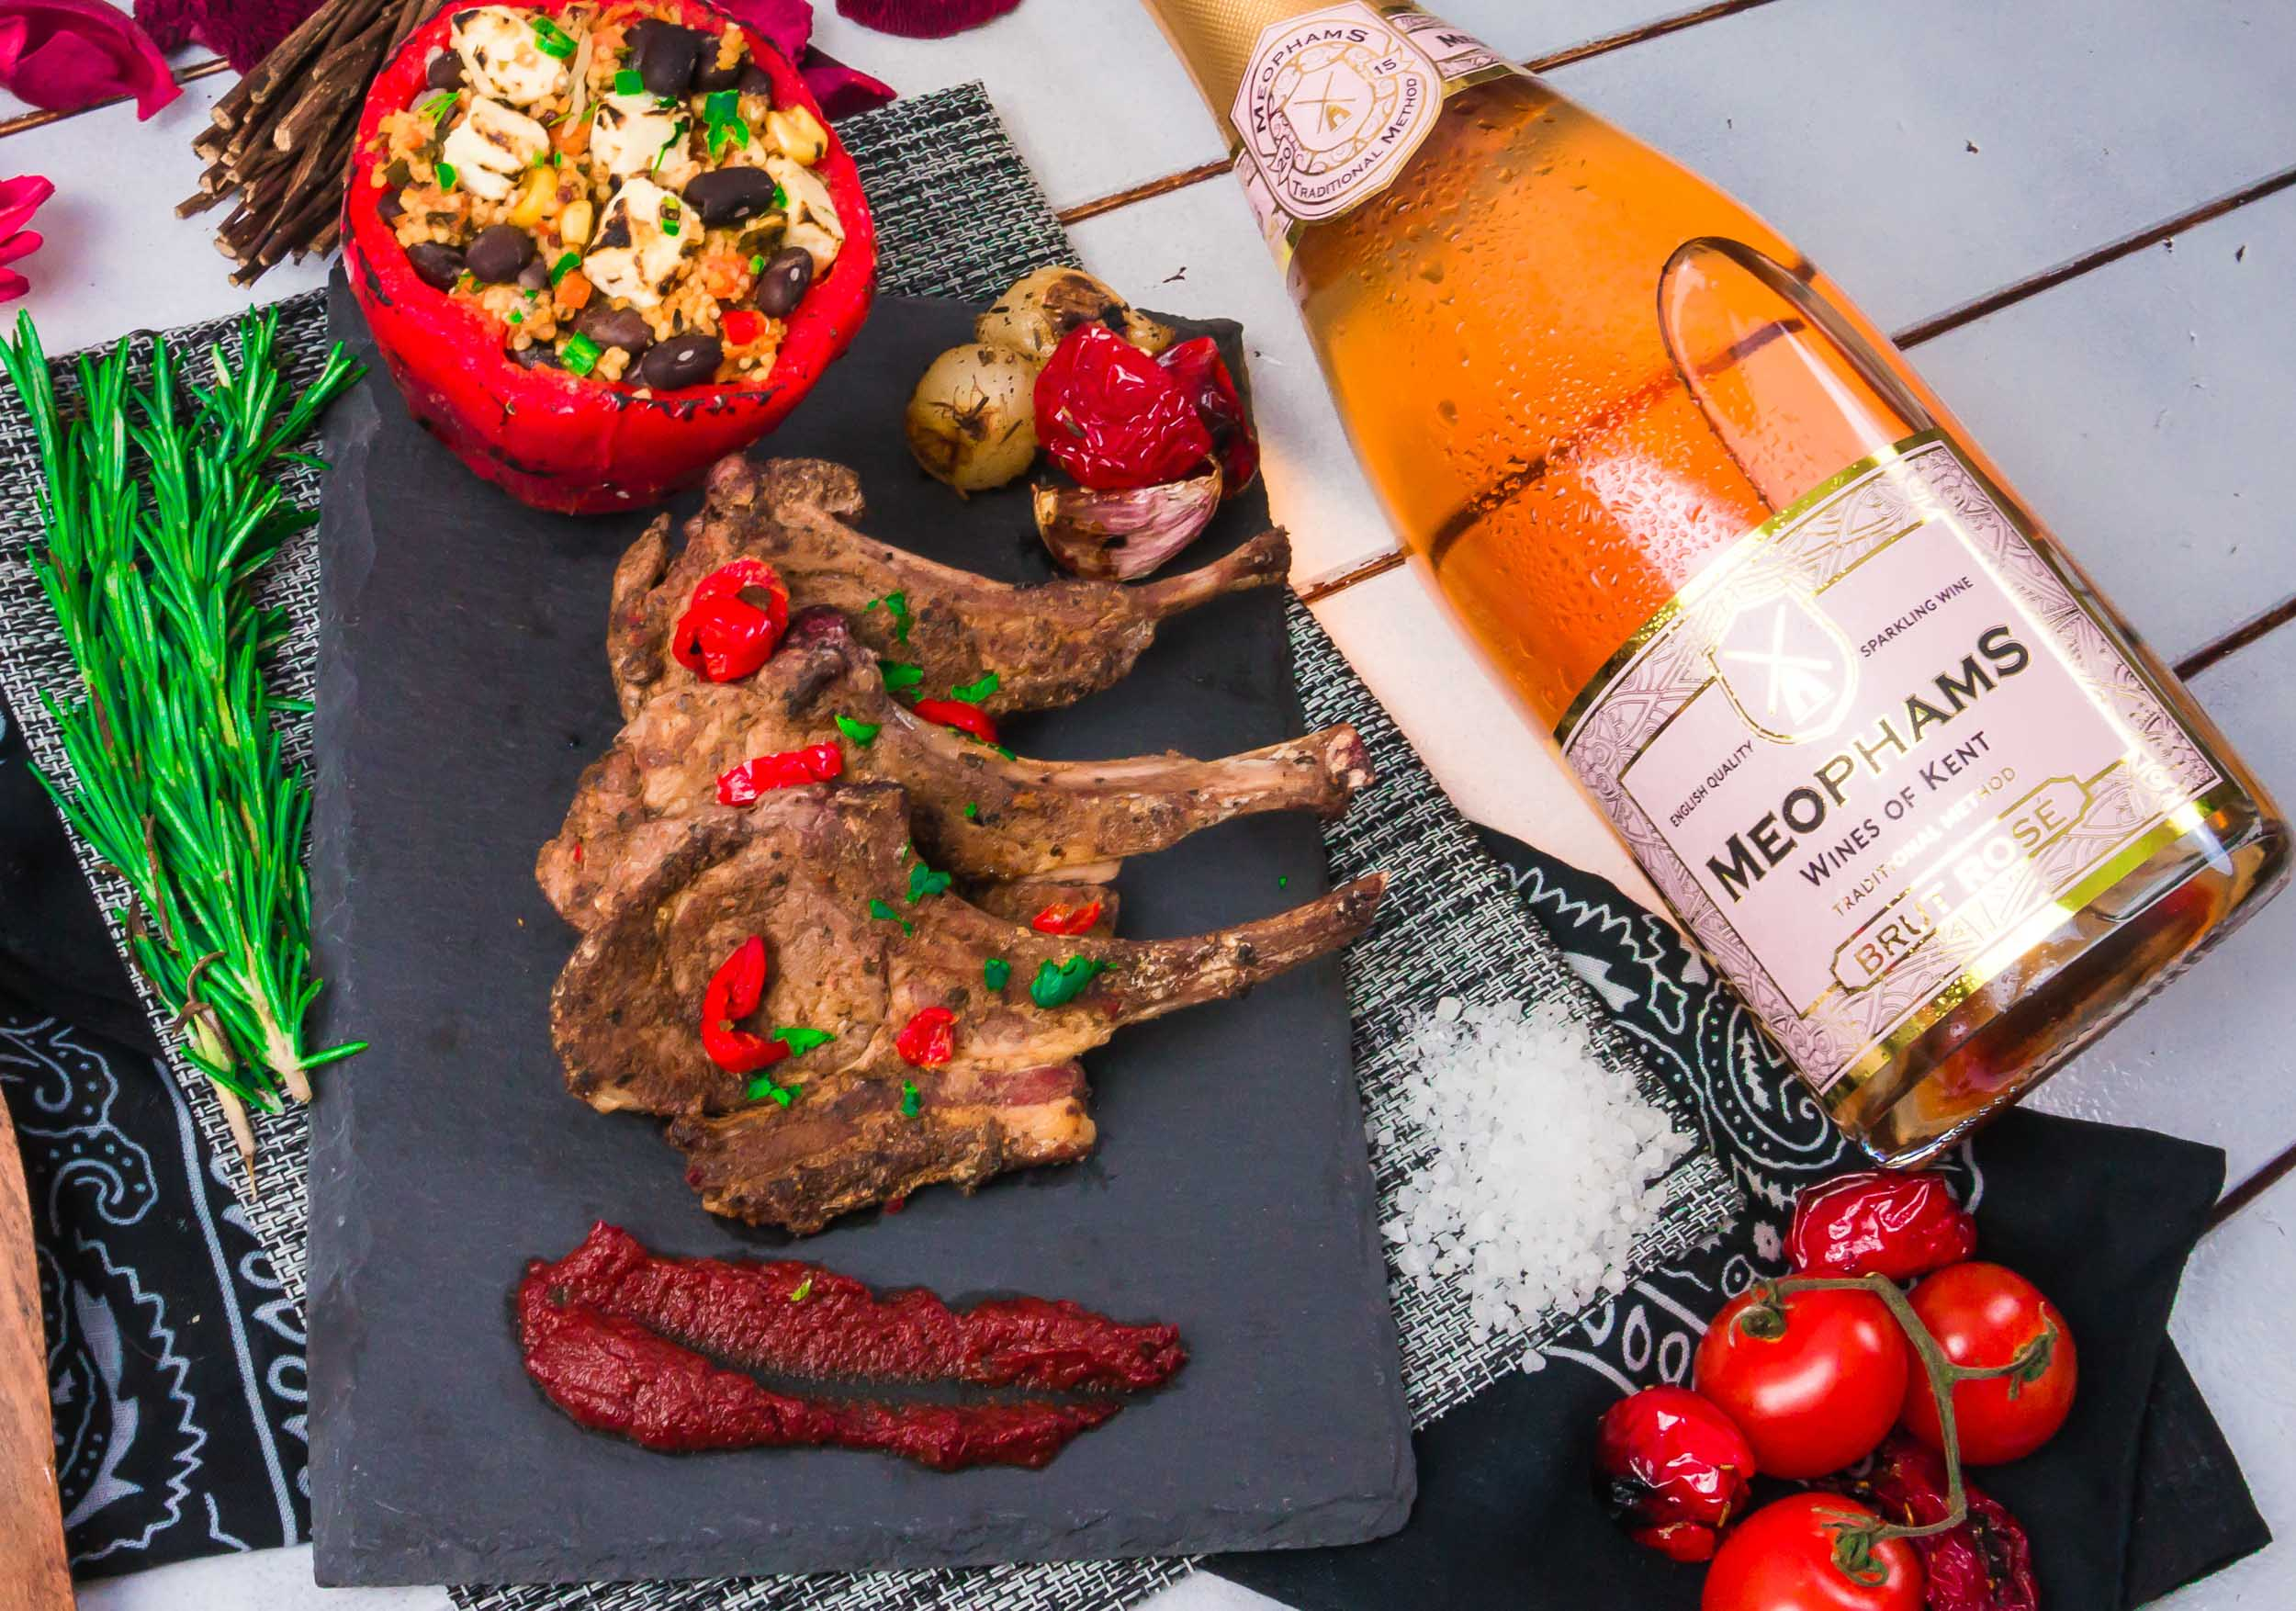 Meophams-Brut-Rose-English-Sparkling-Wine-Lamb-Cutlets-3